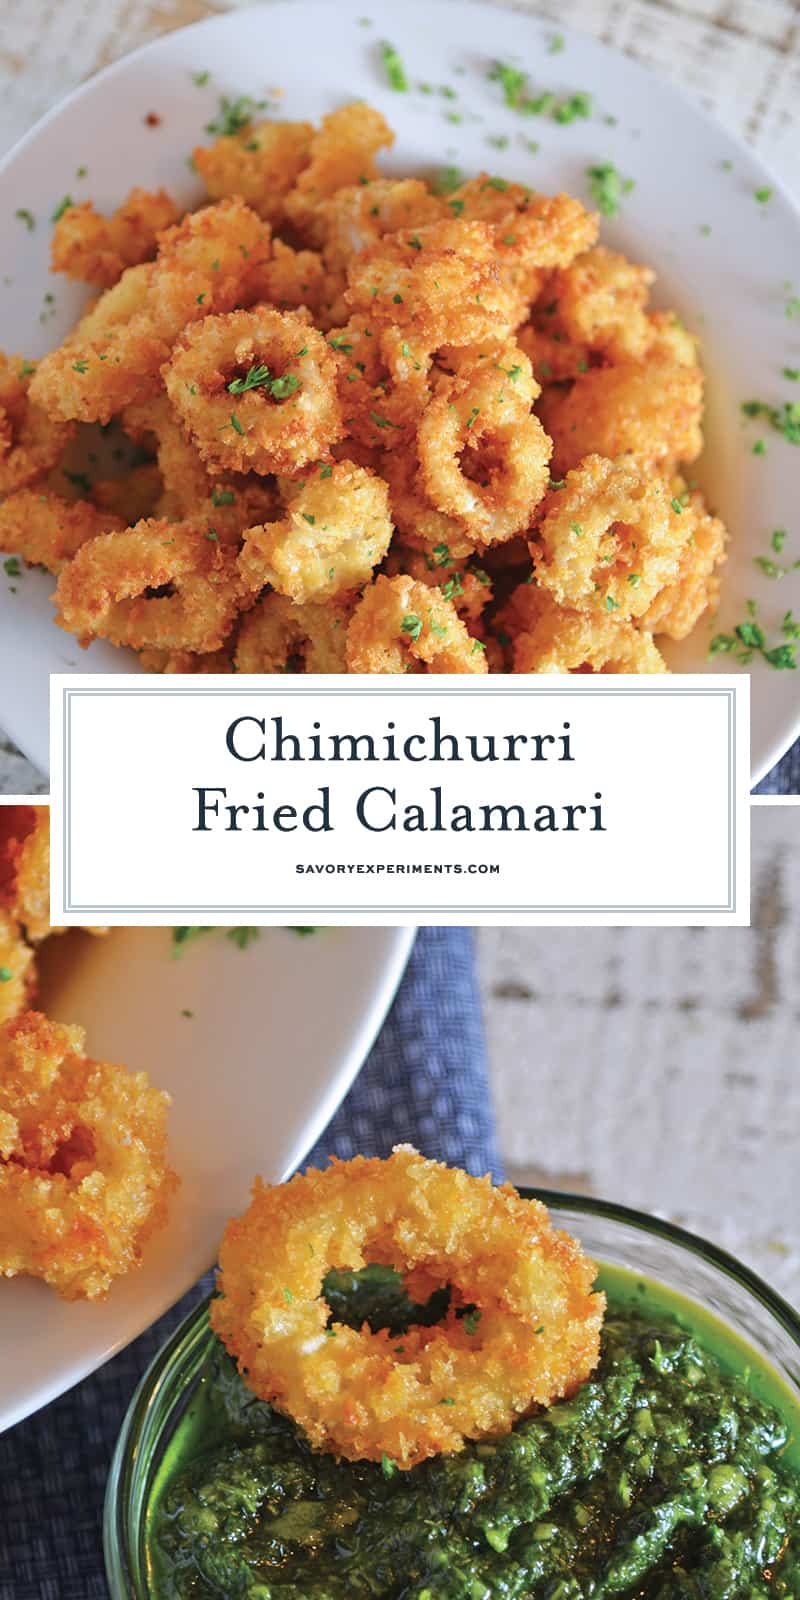 Chimichurri Fried Calamari is a quick and delicious appetizer recipe that can please any crowd! Served with fresh chimichurri sauce, it is a delicious twist. #friedcalamari #easycalamarirecipe www.savoryexperiments.com